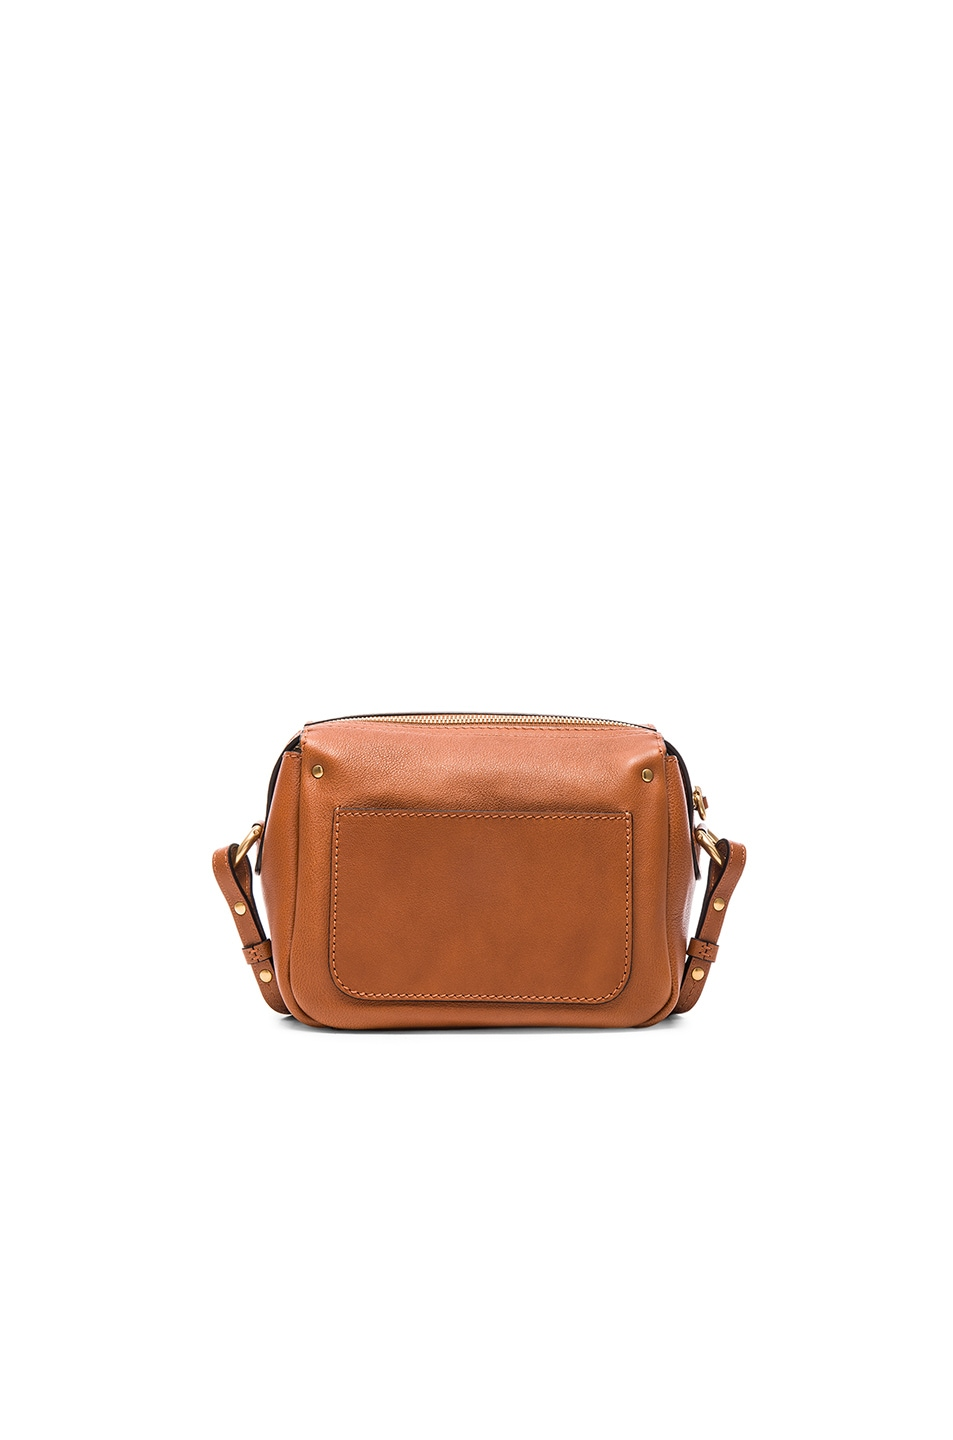 INDY SMALL BAG IN GRAINED CALFSKIN